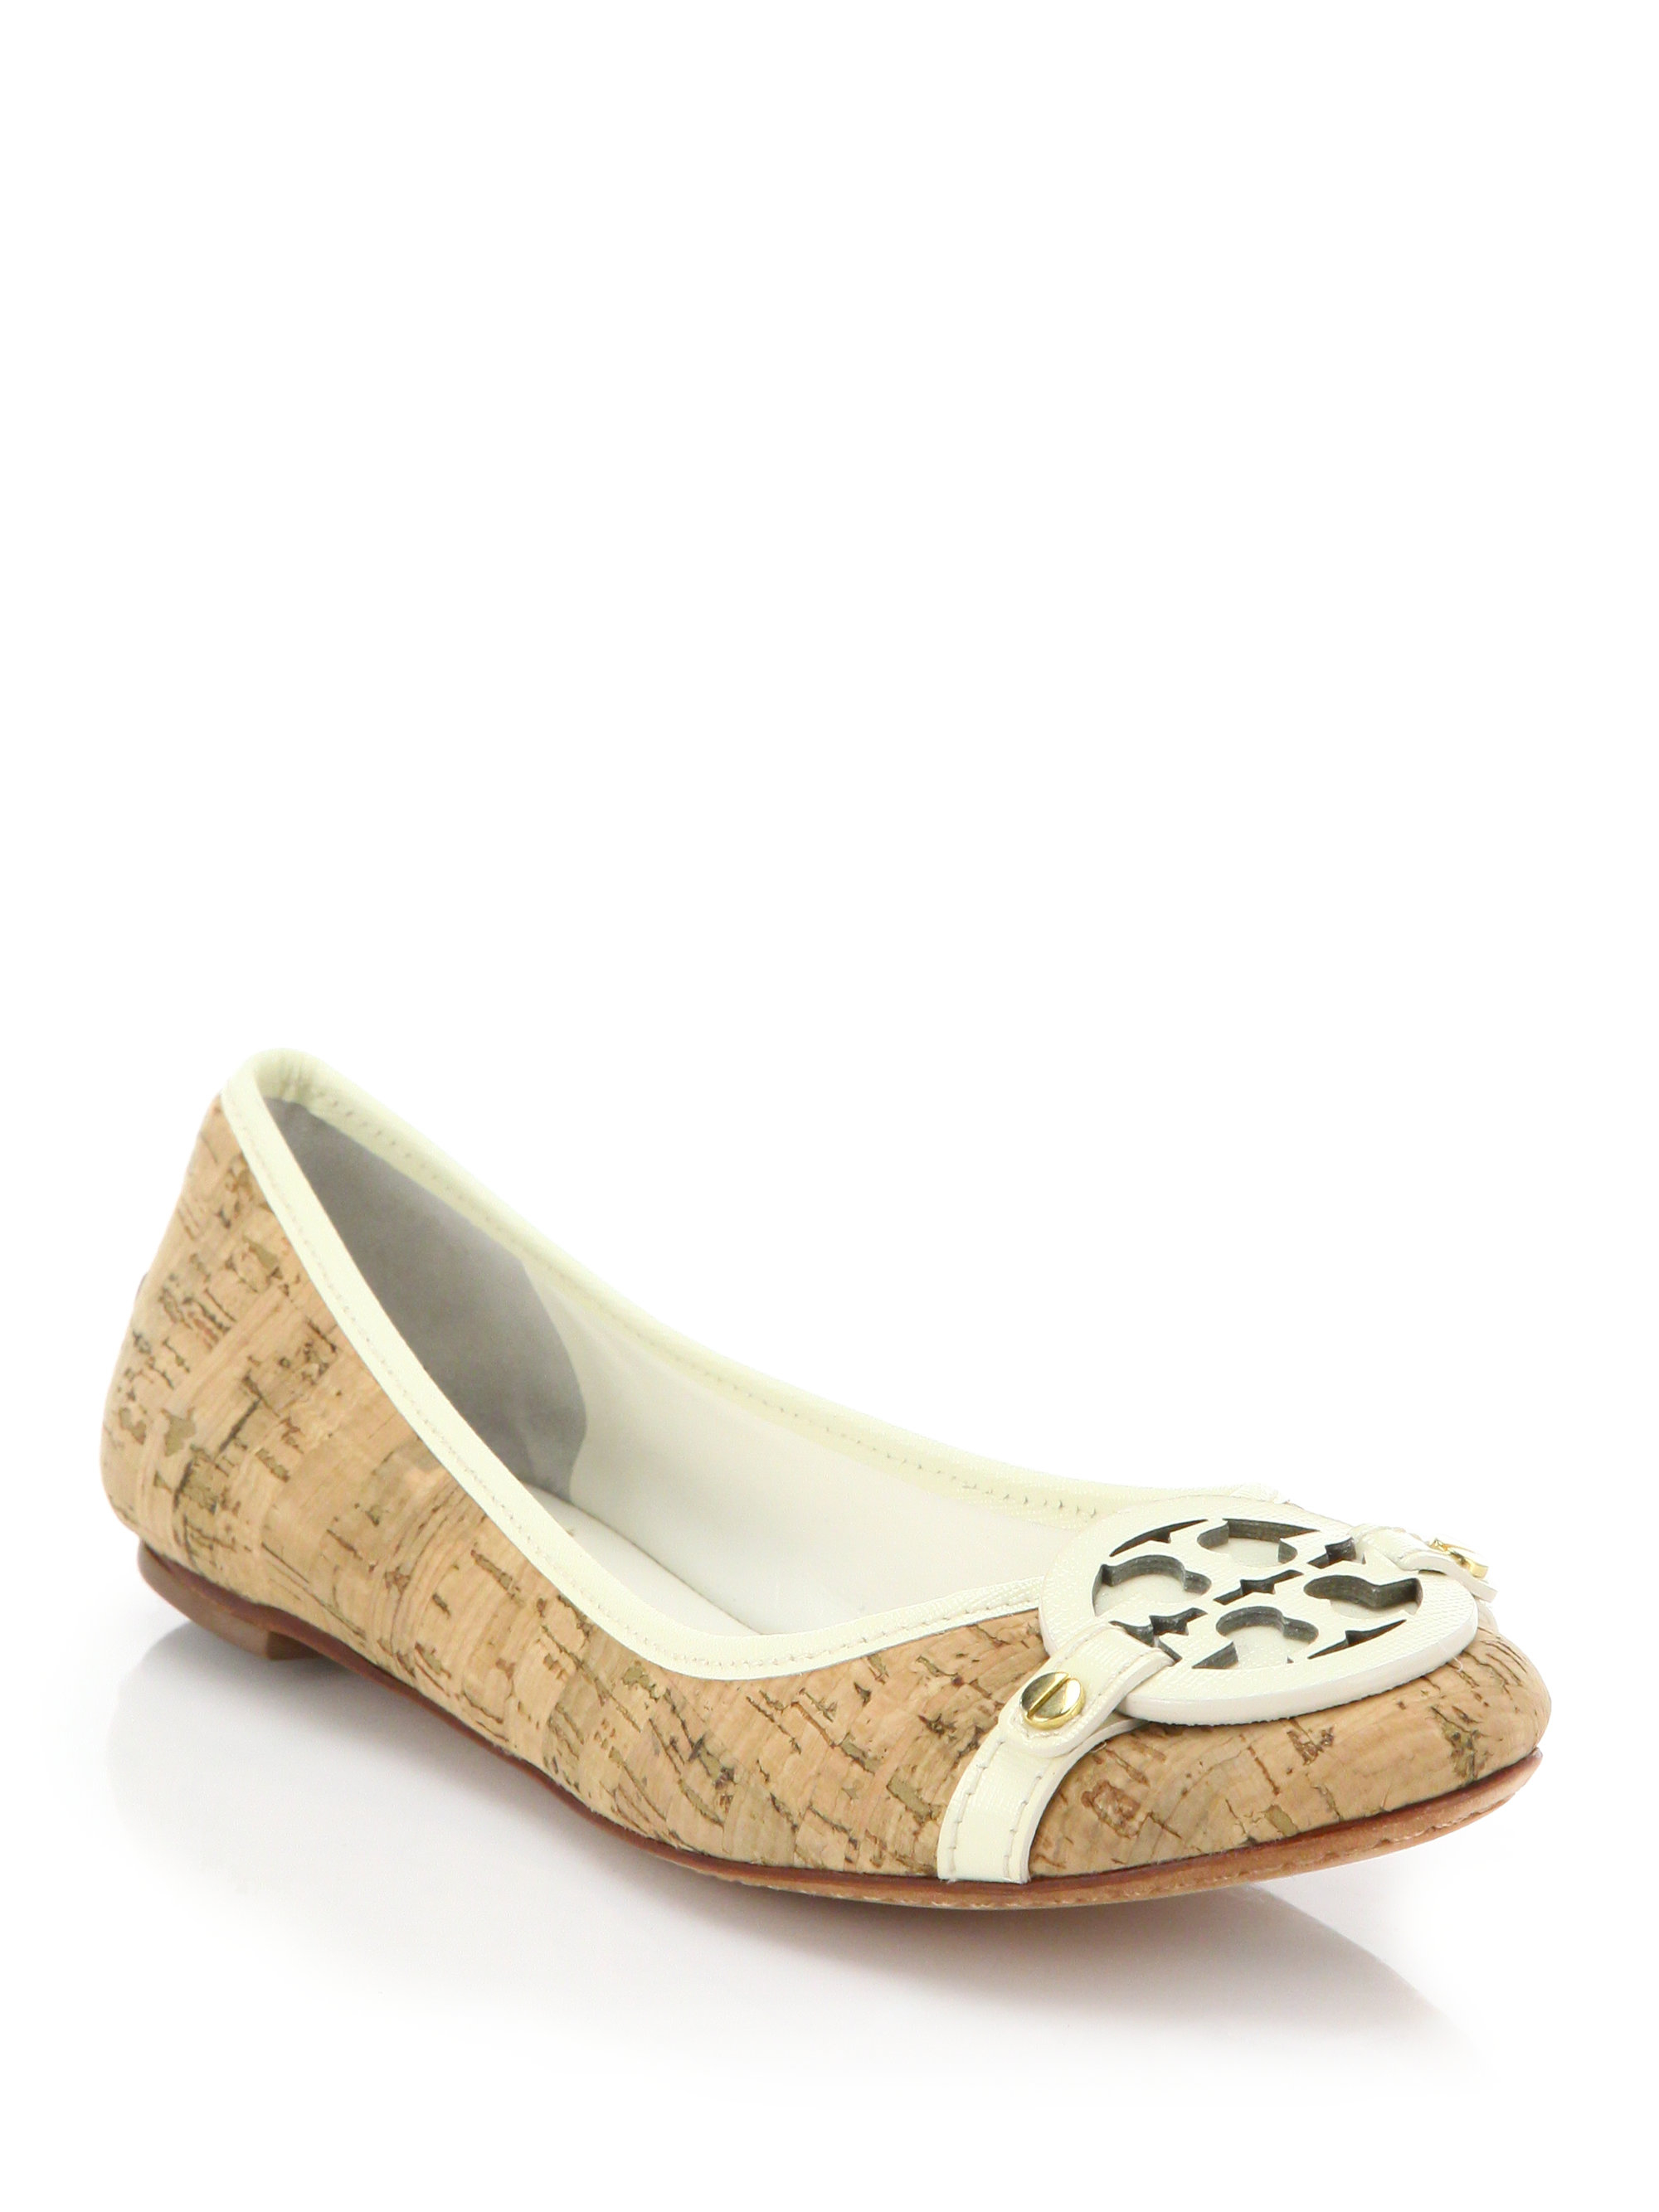 91de77f020ad ... discount lyst tory burch aaden leather trimmed logo cork flats in brown  cbfe8 3a086